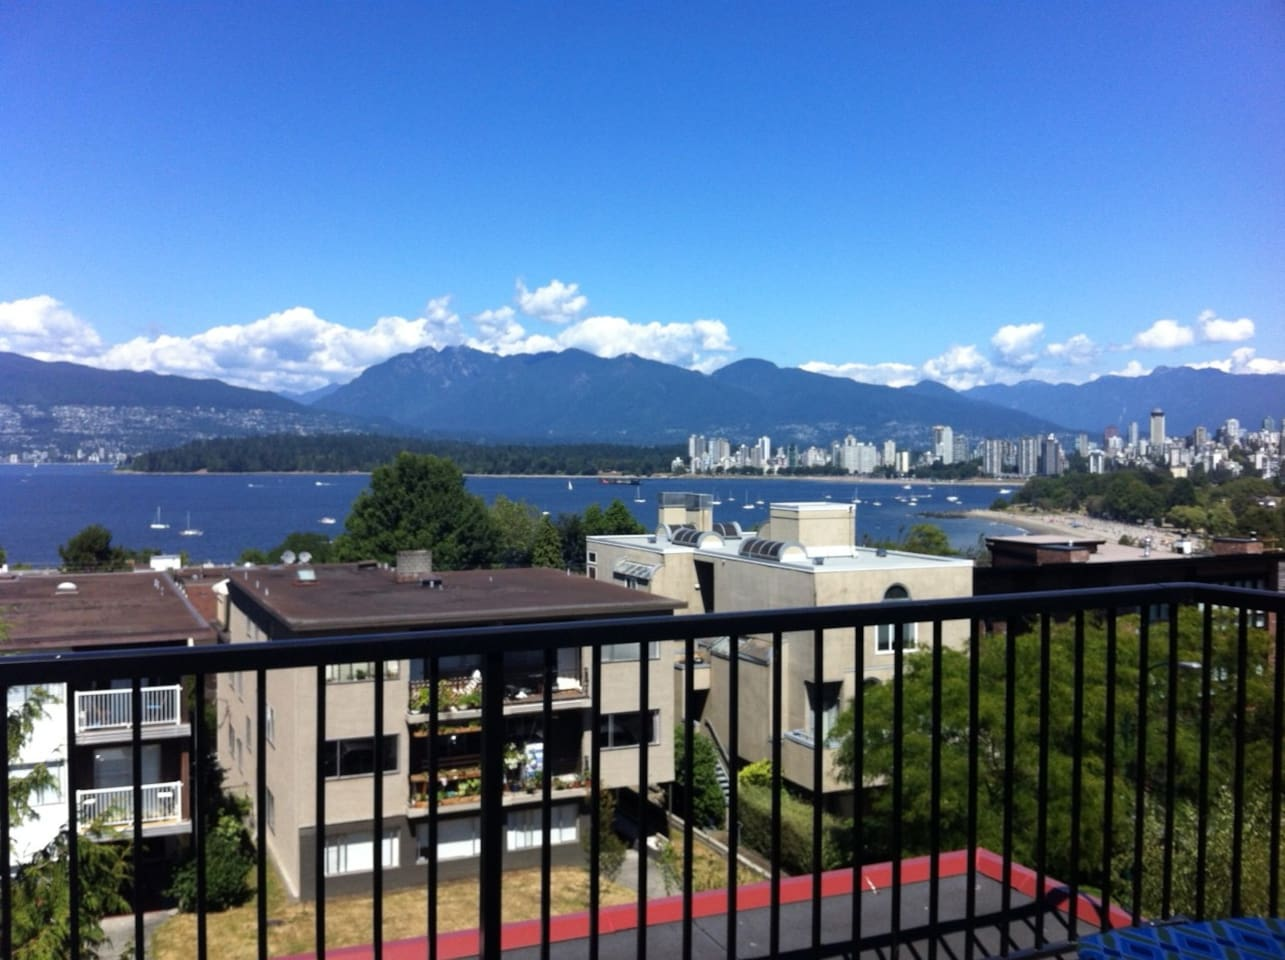 SPECTACULAR view of ocean, mountains, and city from private balcony